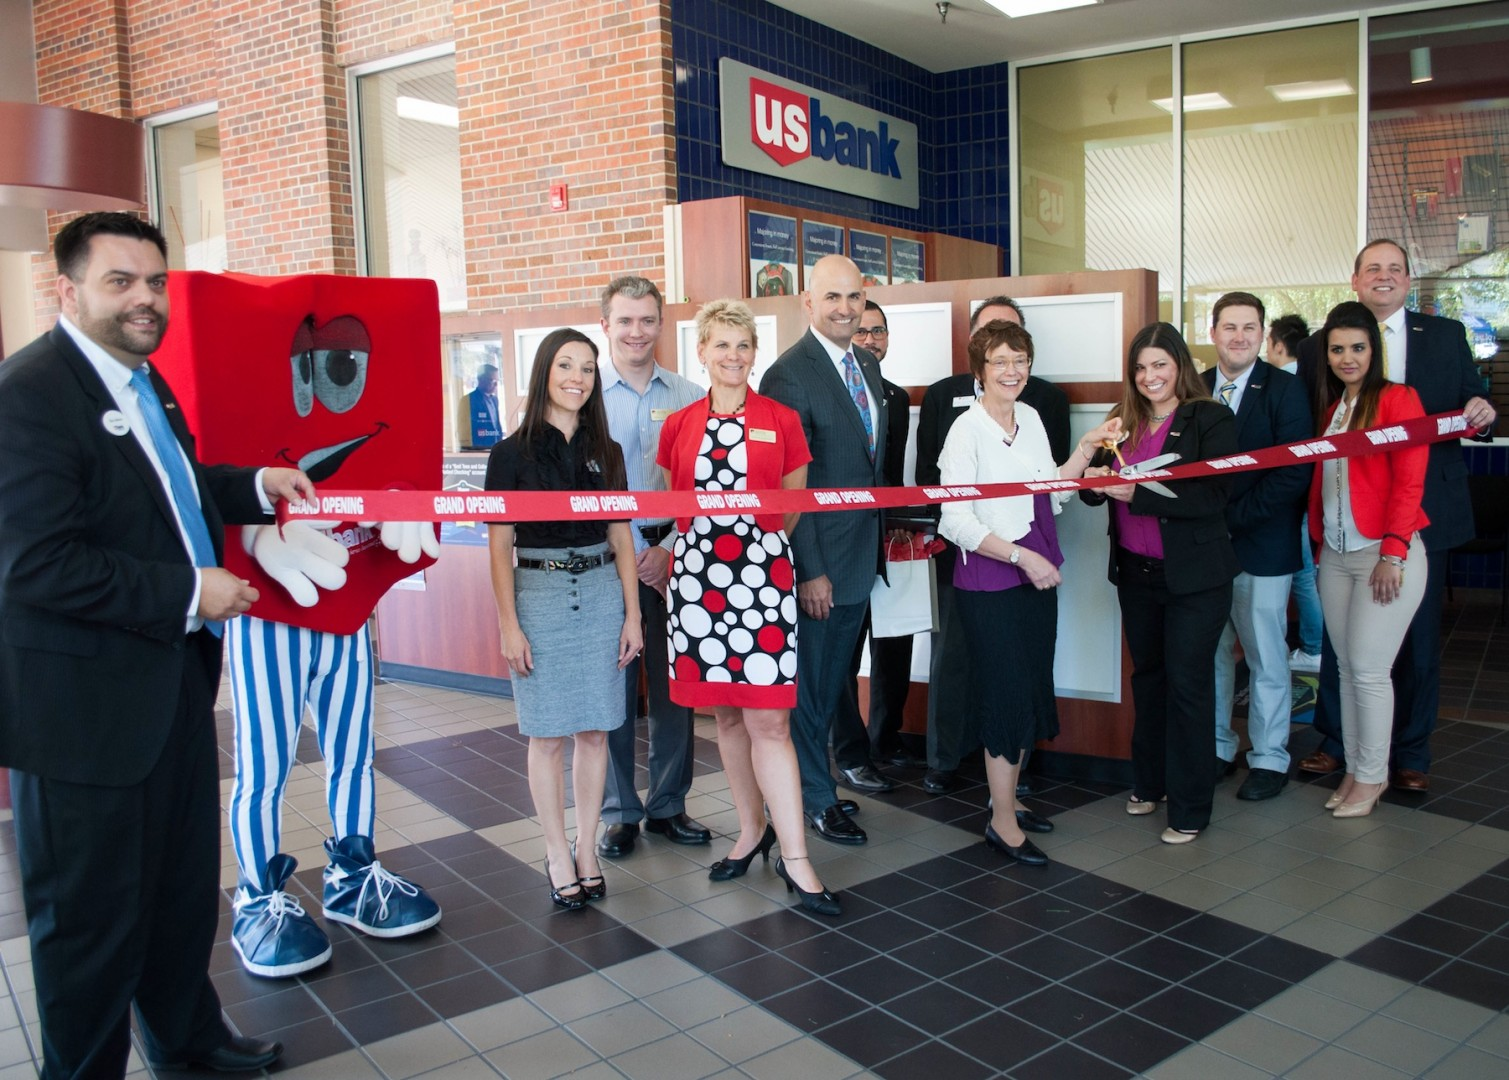 Breanna Demont | Clarion  Chancellor Rebecca Chopp, fifth from right, helped open the U.S. Bank on campus on Sept. 16.